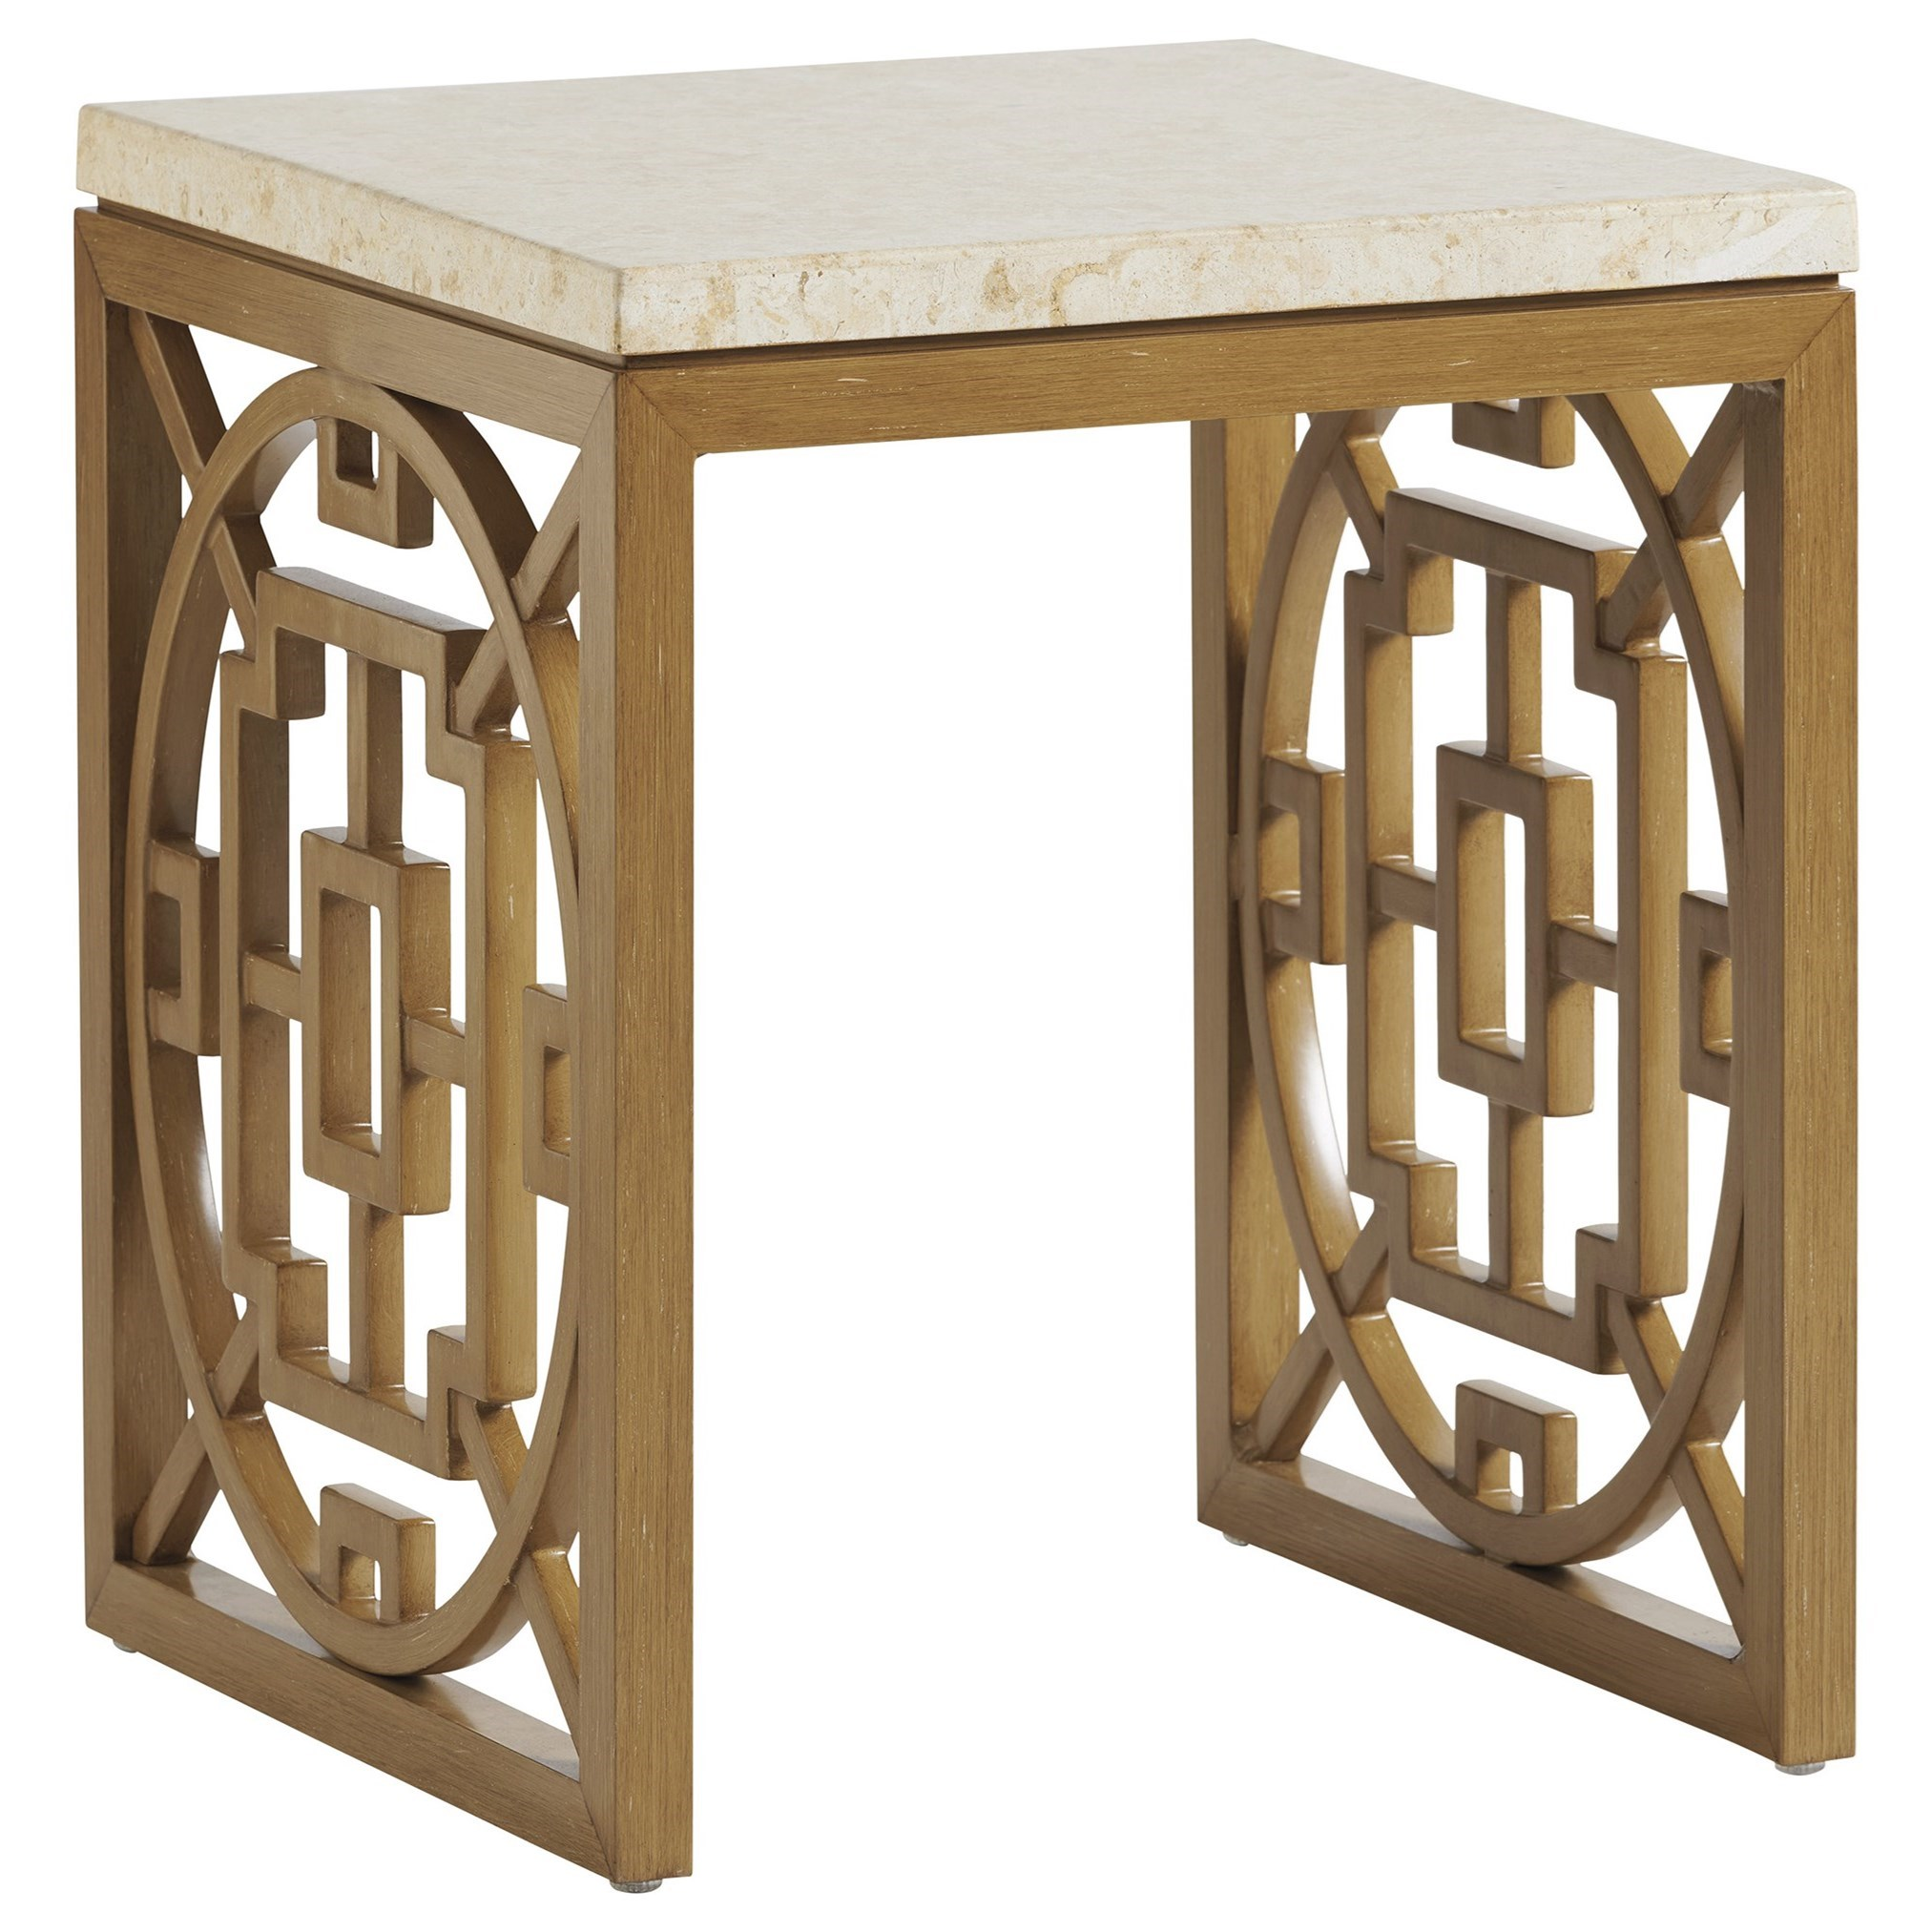 Los Altos Valley View Rectangular End Table by Tommy Bahama Outdoor Living at Baer's Furniture